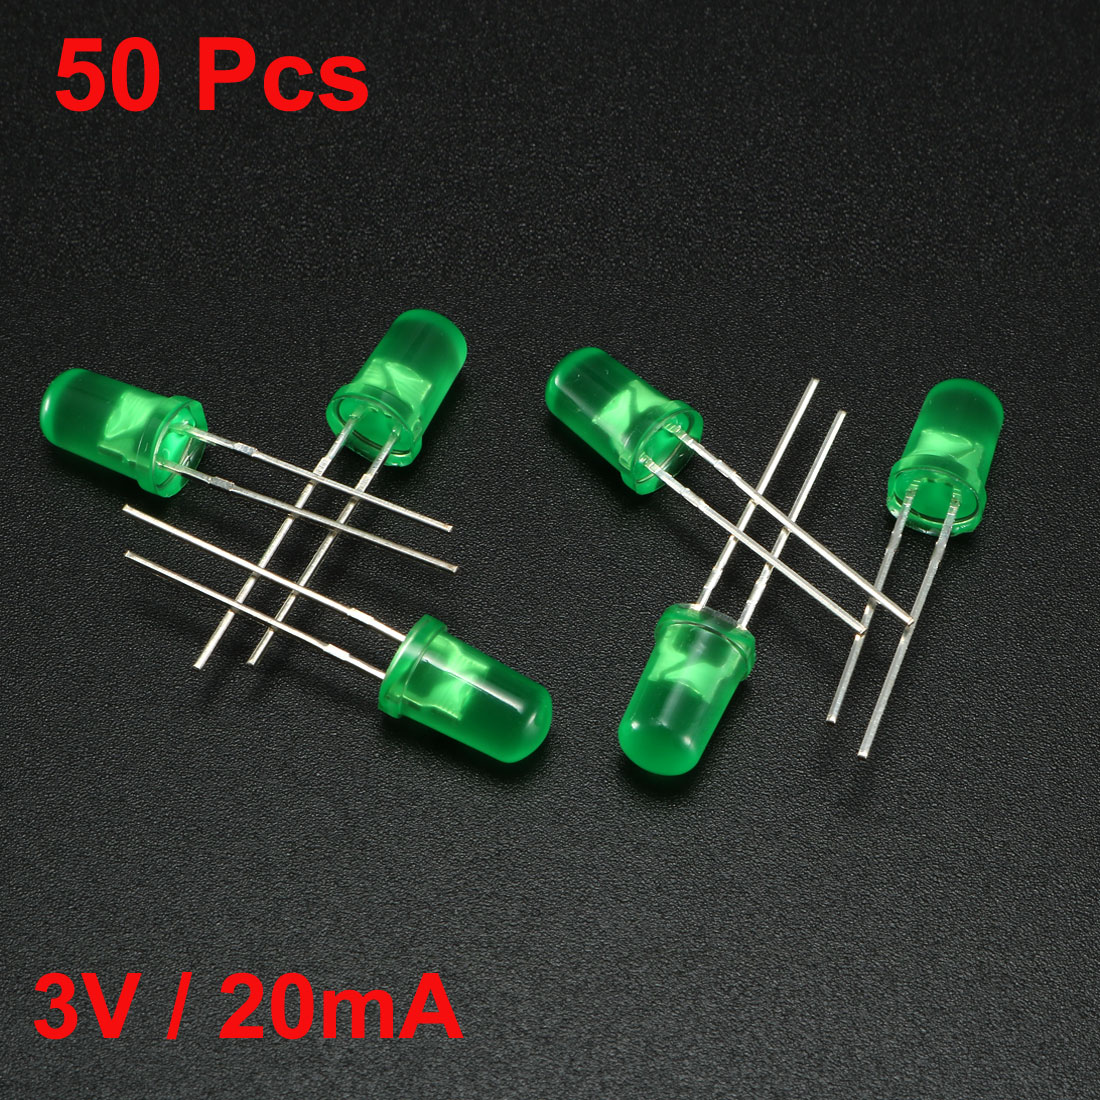 Uxcell Fast Flashing Dynamics LED Diode Lights Bright Lighting Bulb Lamps Electronics Components 50pcs Green